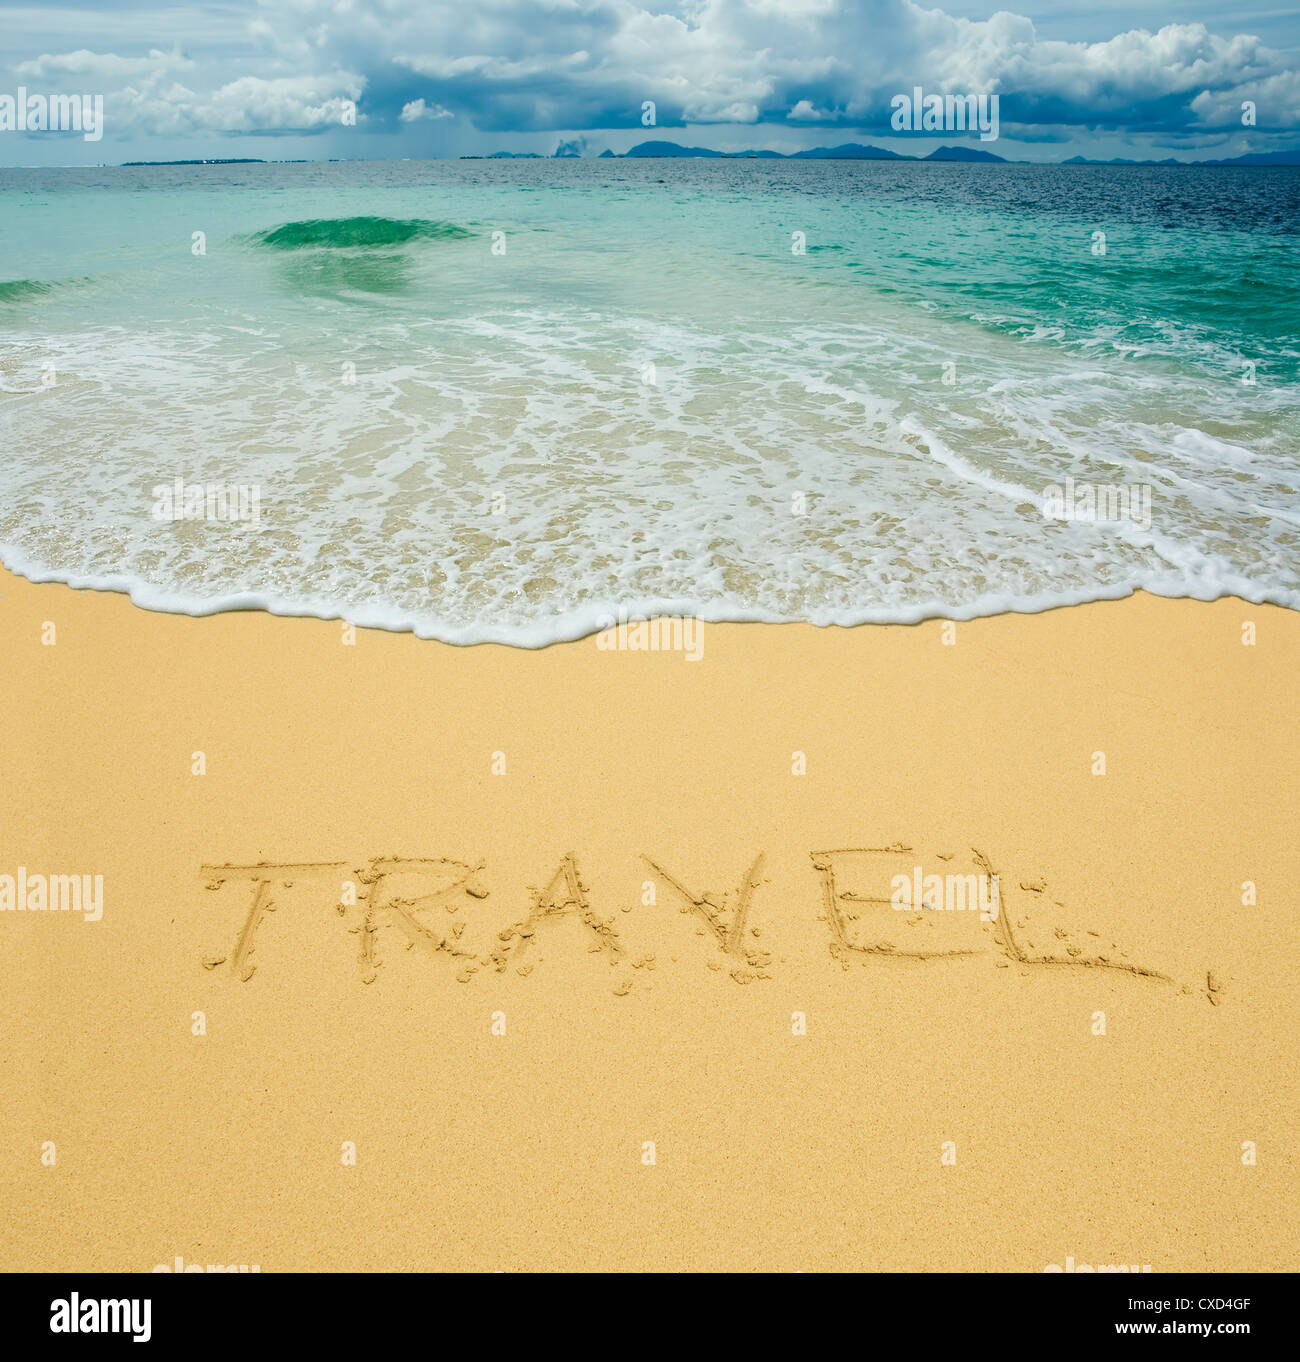 travel written in a sandy tropical beach - Stock Image